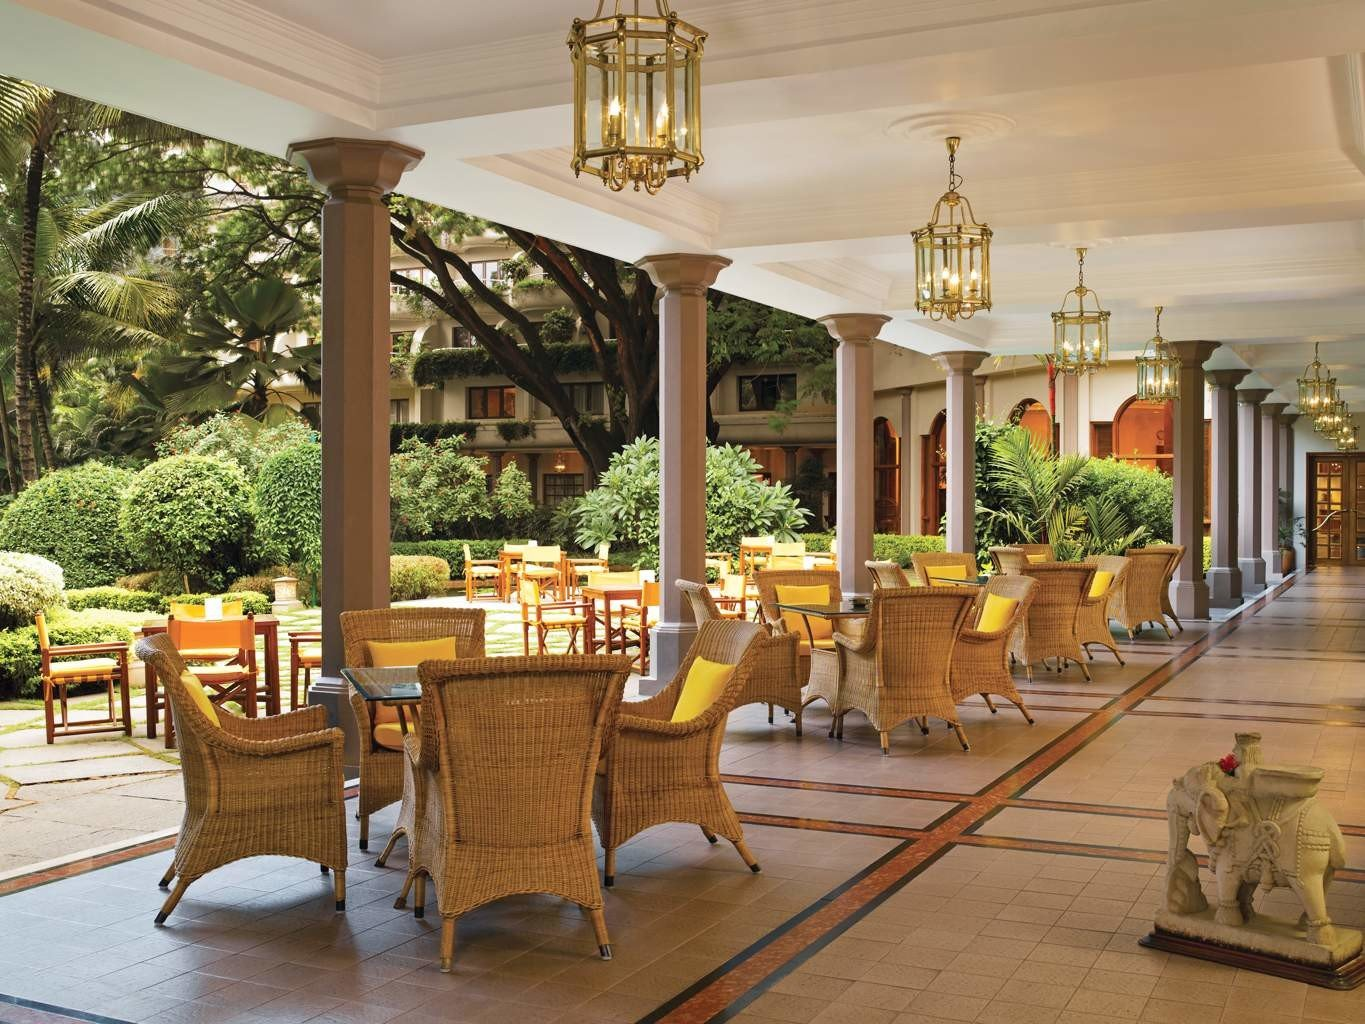 Business City Cultural Dining Elegant Luxury Shop property Lobby restaurant home palace outdoor structure Resort porch hacienda